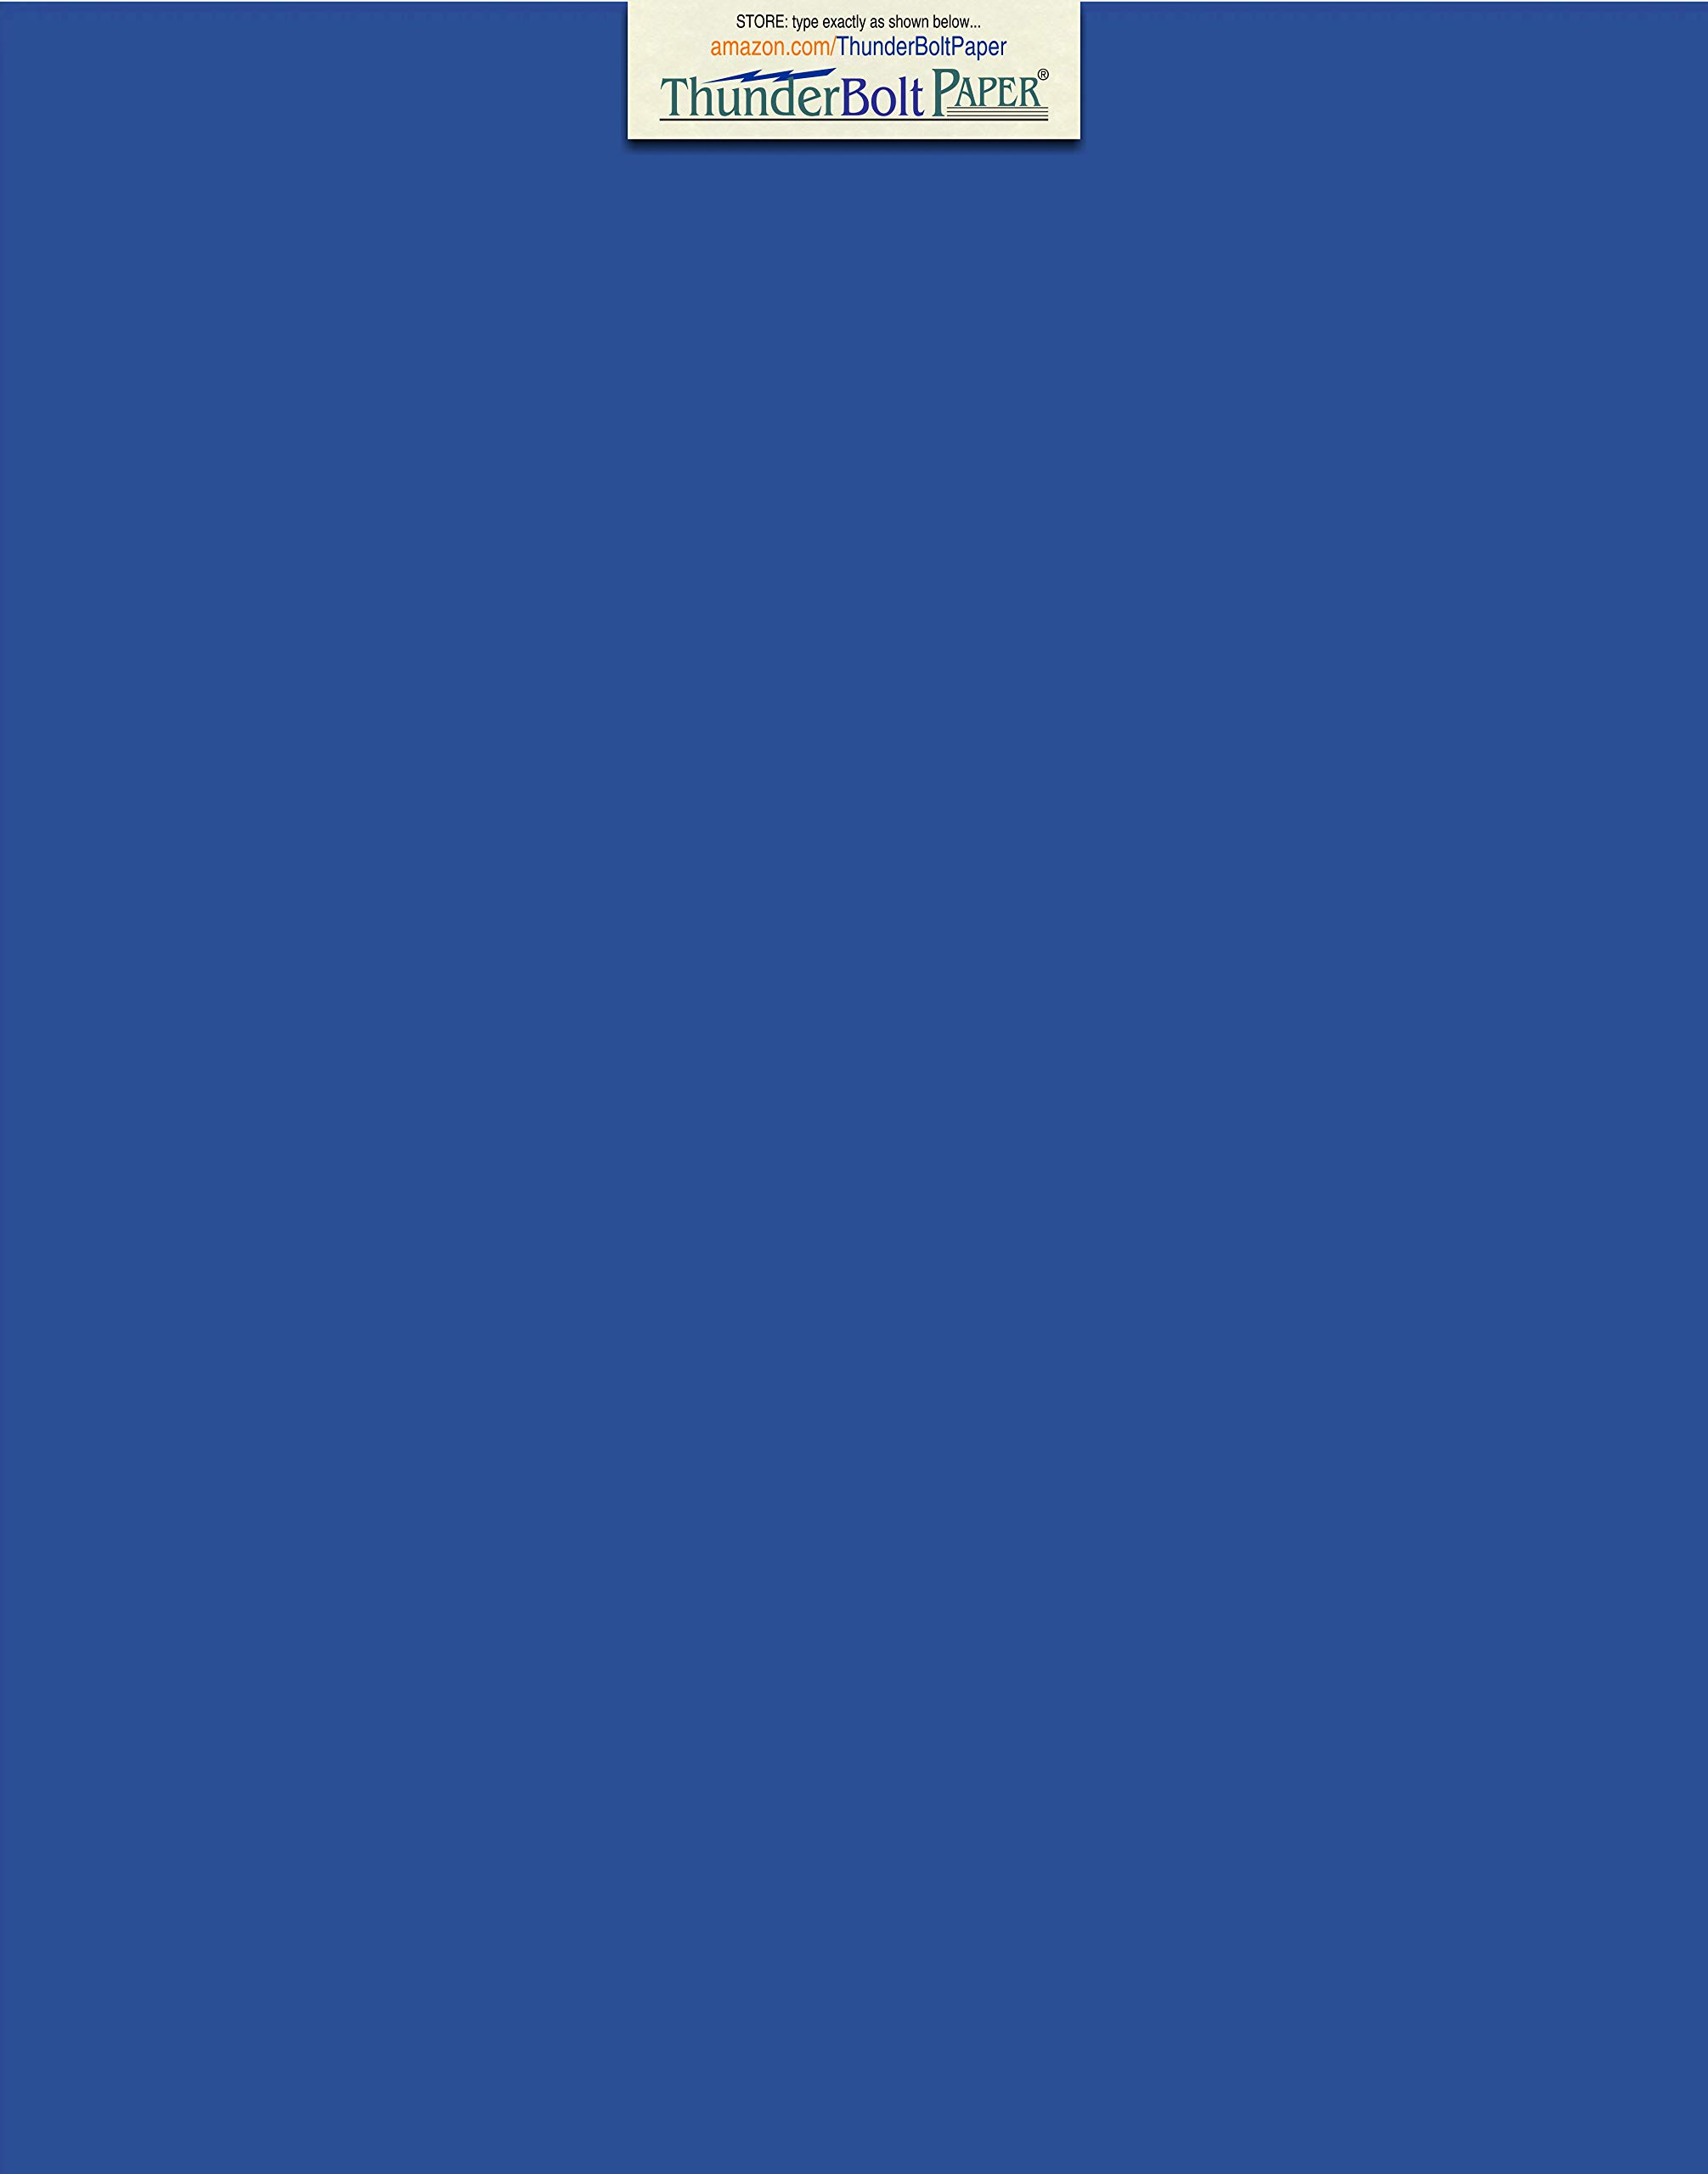 100 Bright Royal Blue Color 65# Cover/Card Paper Sheets 11 X 14 Inches Scrapbook|Picture-Frame Size - 65 lb/pound Light Weight Cardstock - Quality Smooth Paper Surface